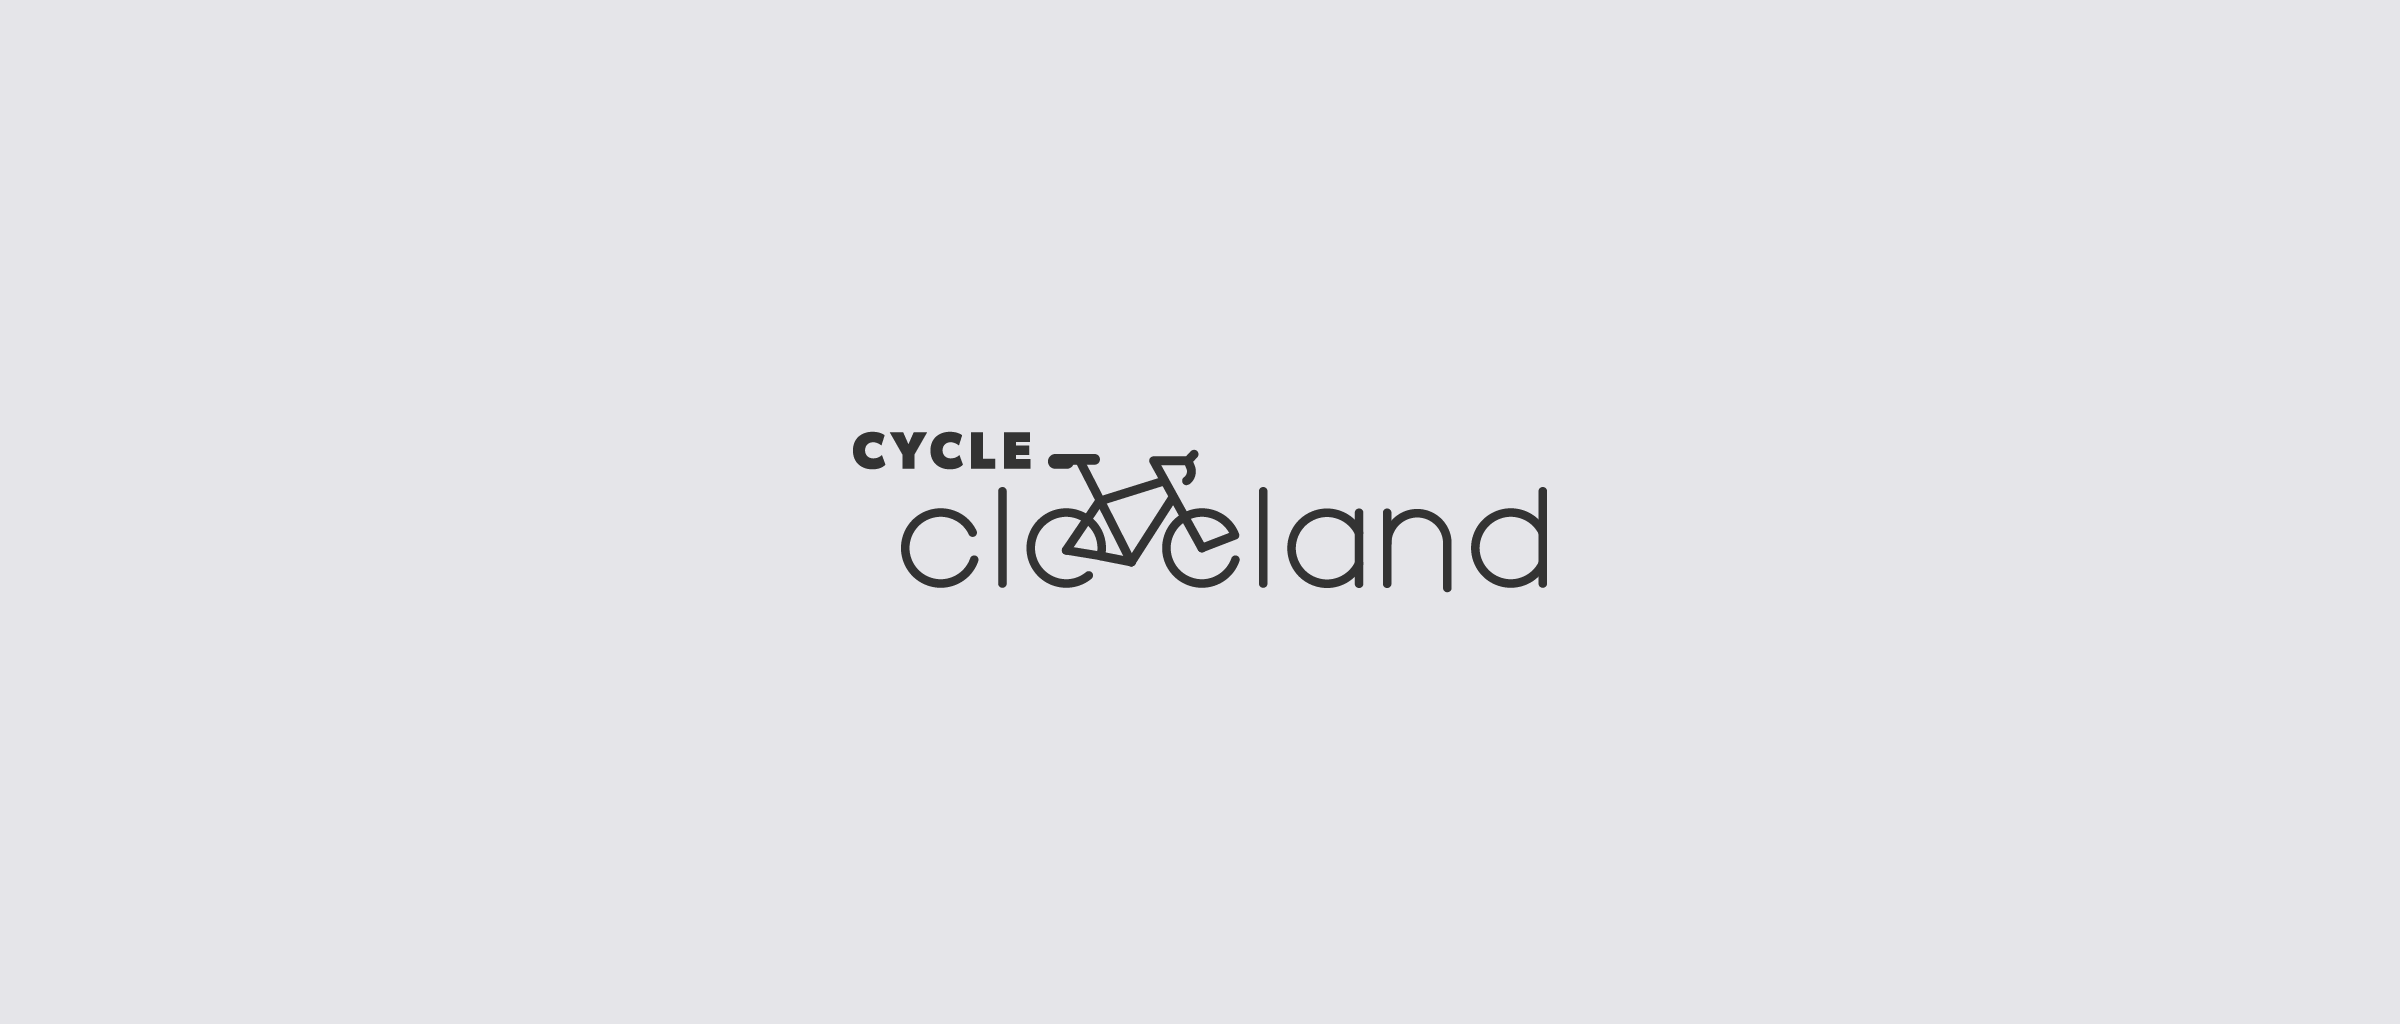 logo_cycle-cleveland_bw.png